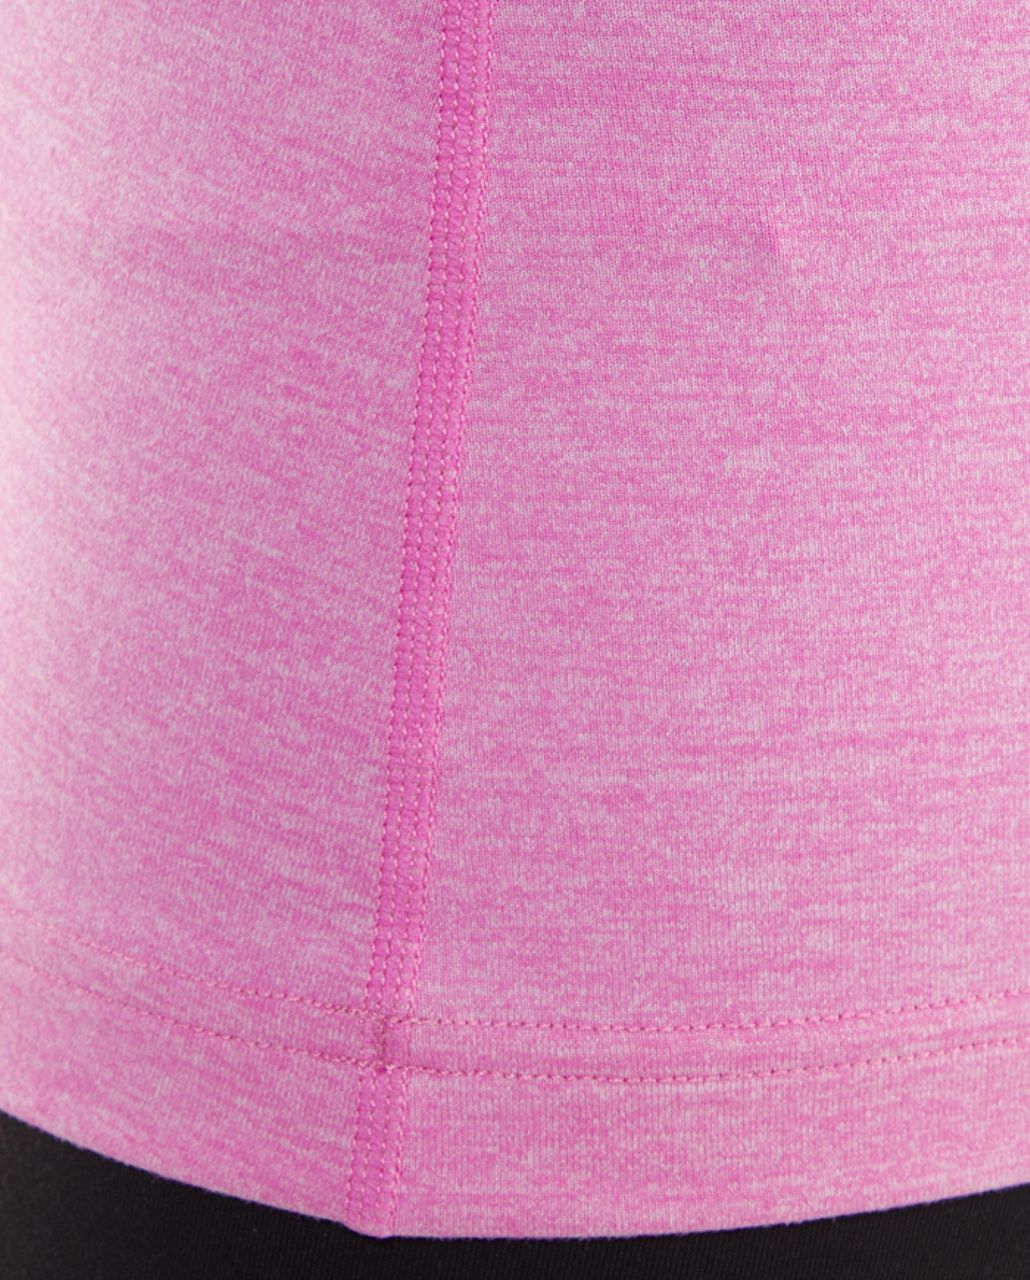 Lululemon Cool Racerback - Heathered Smoky Rose